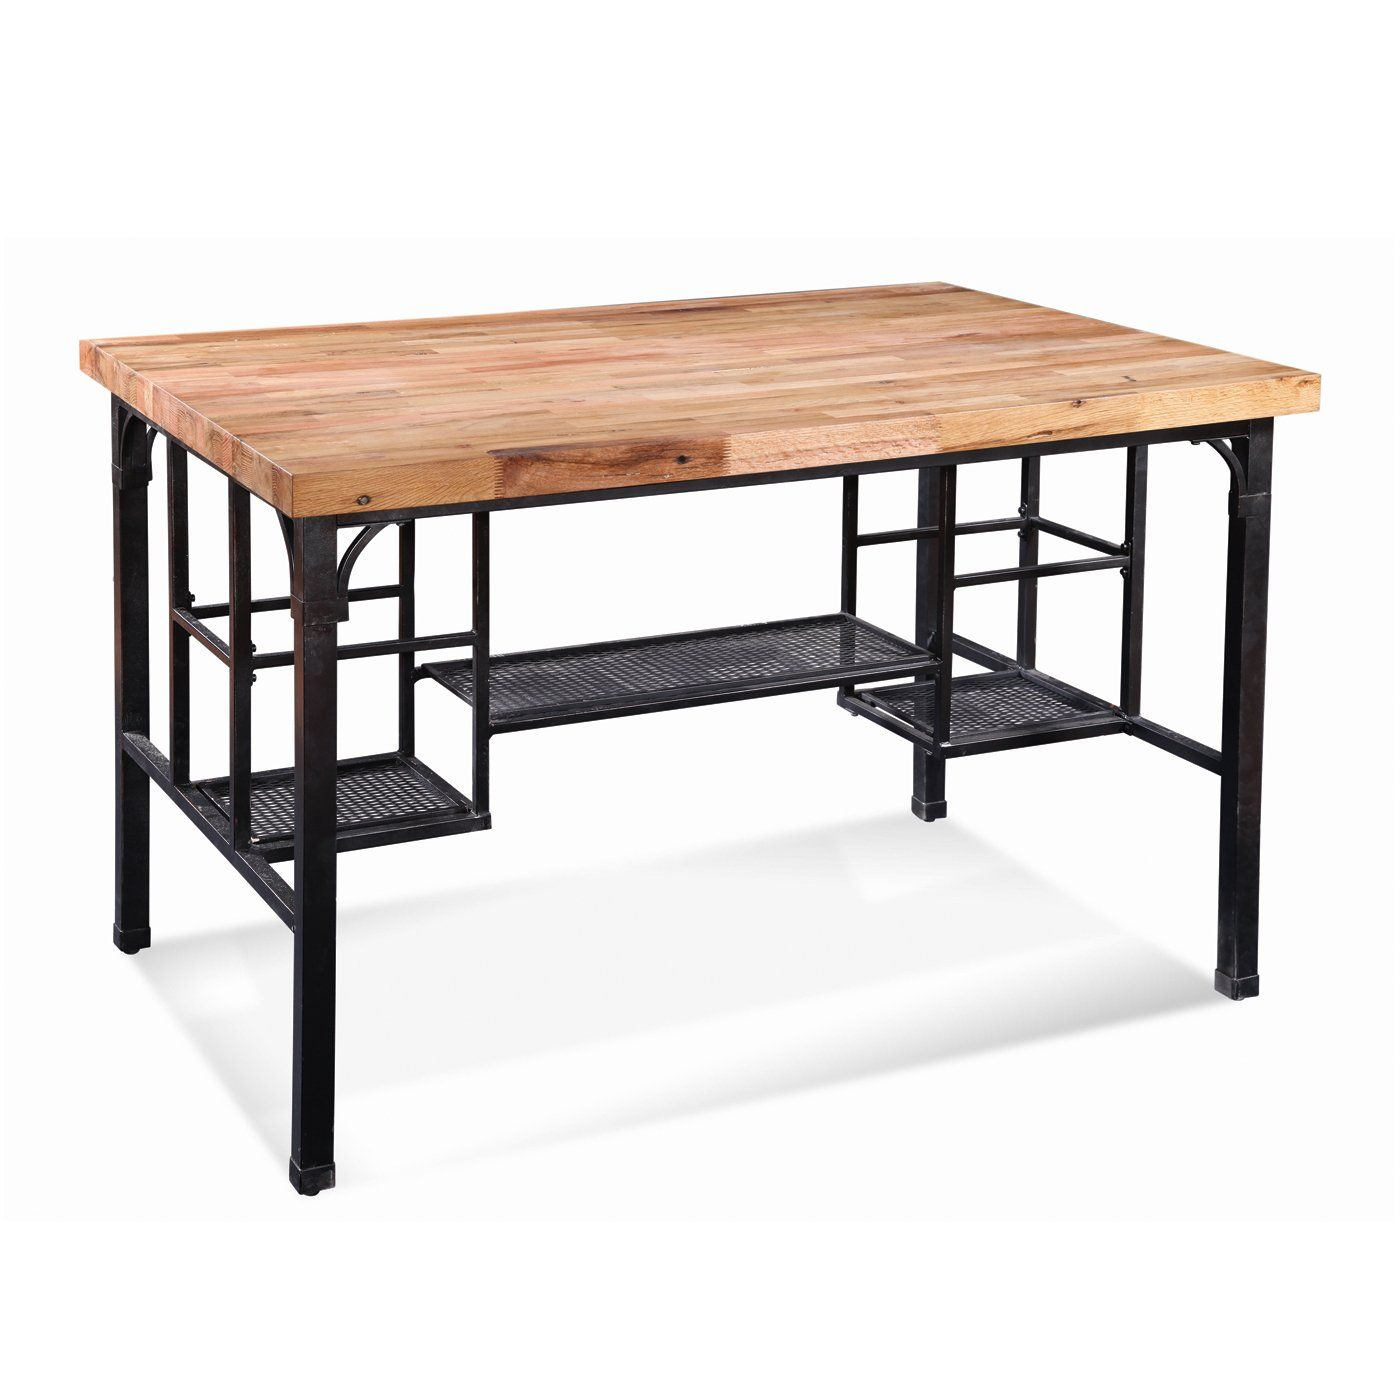 High rise gathering height butcher block top table kitchen island